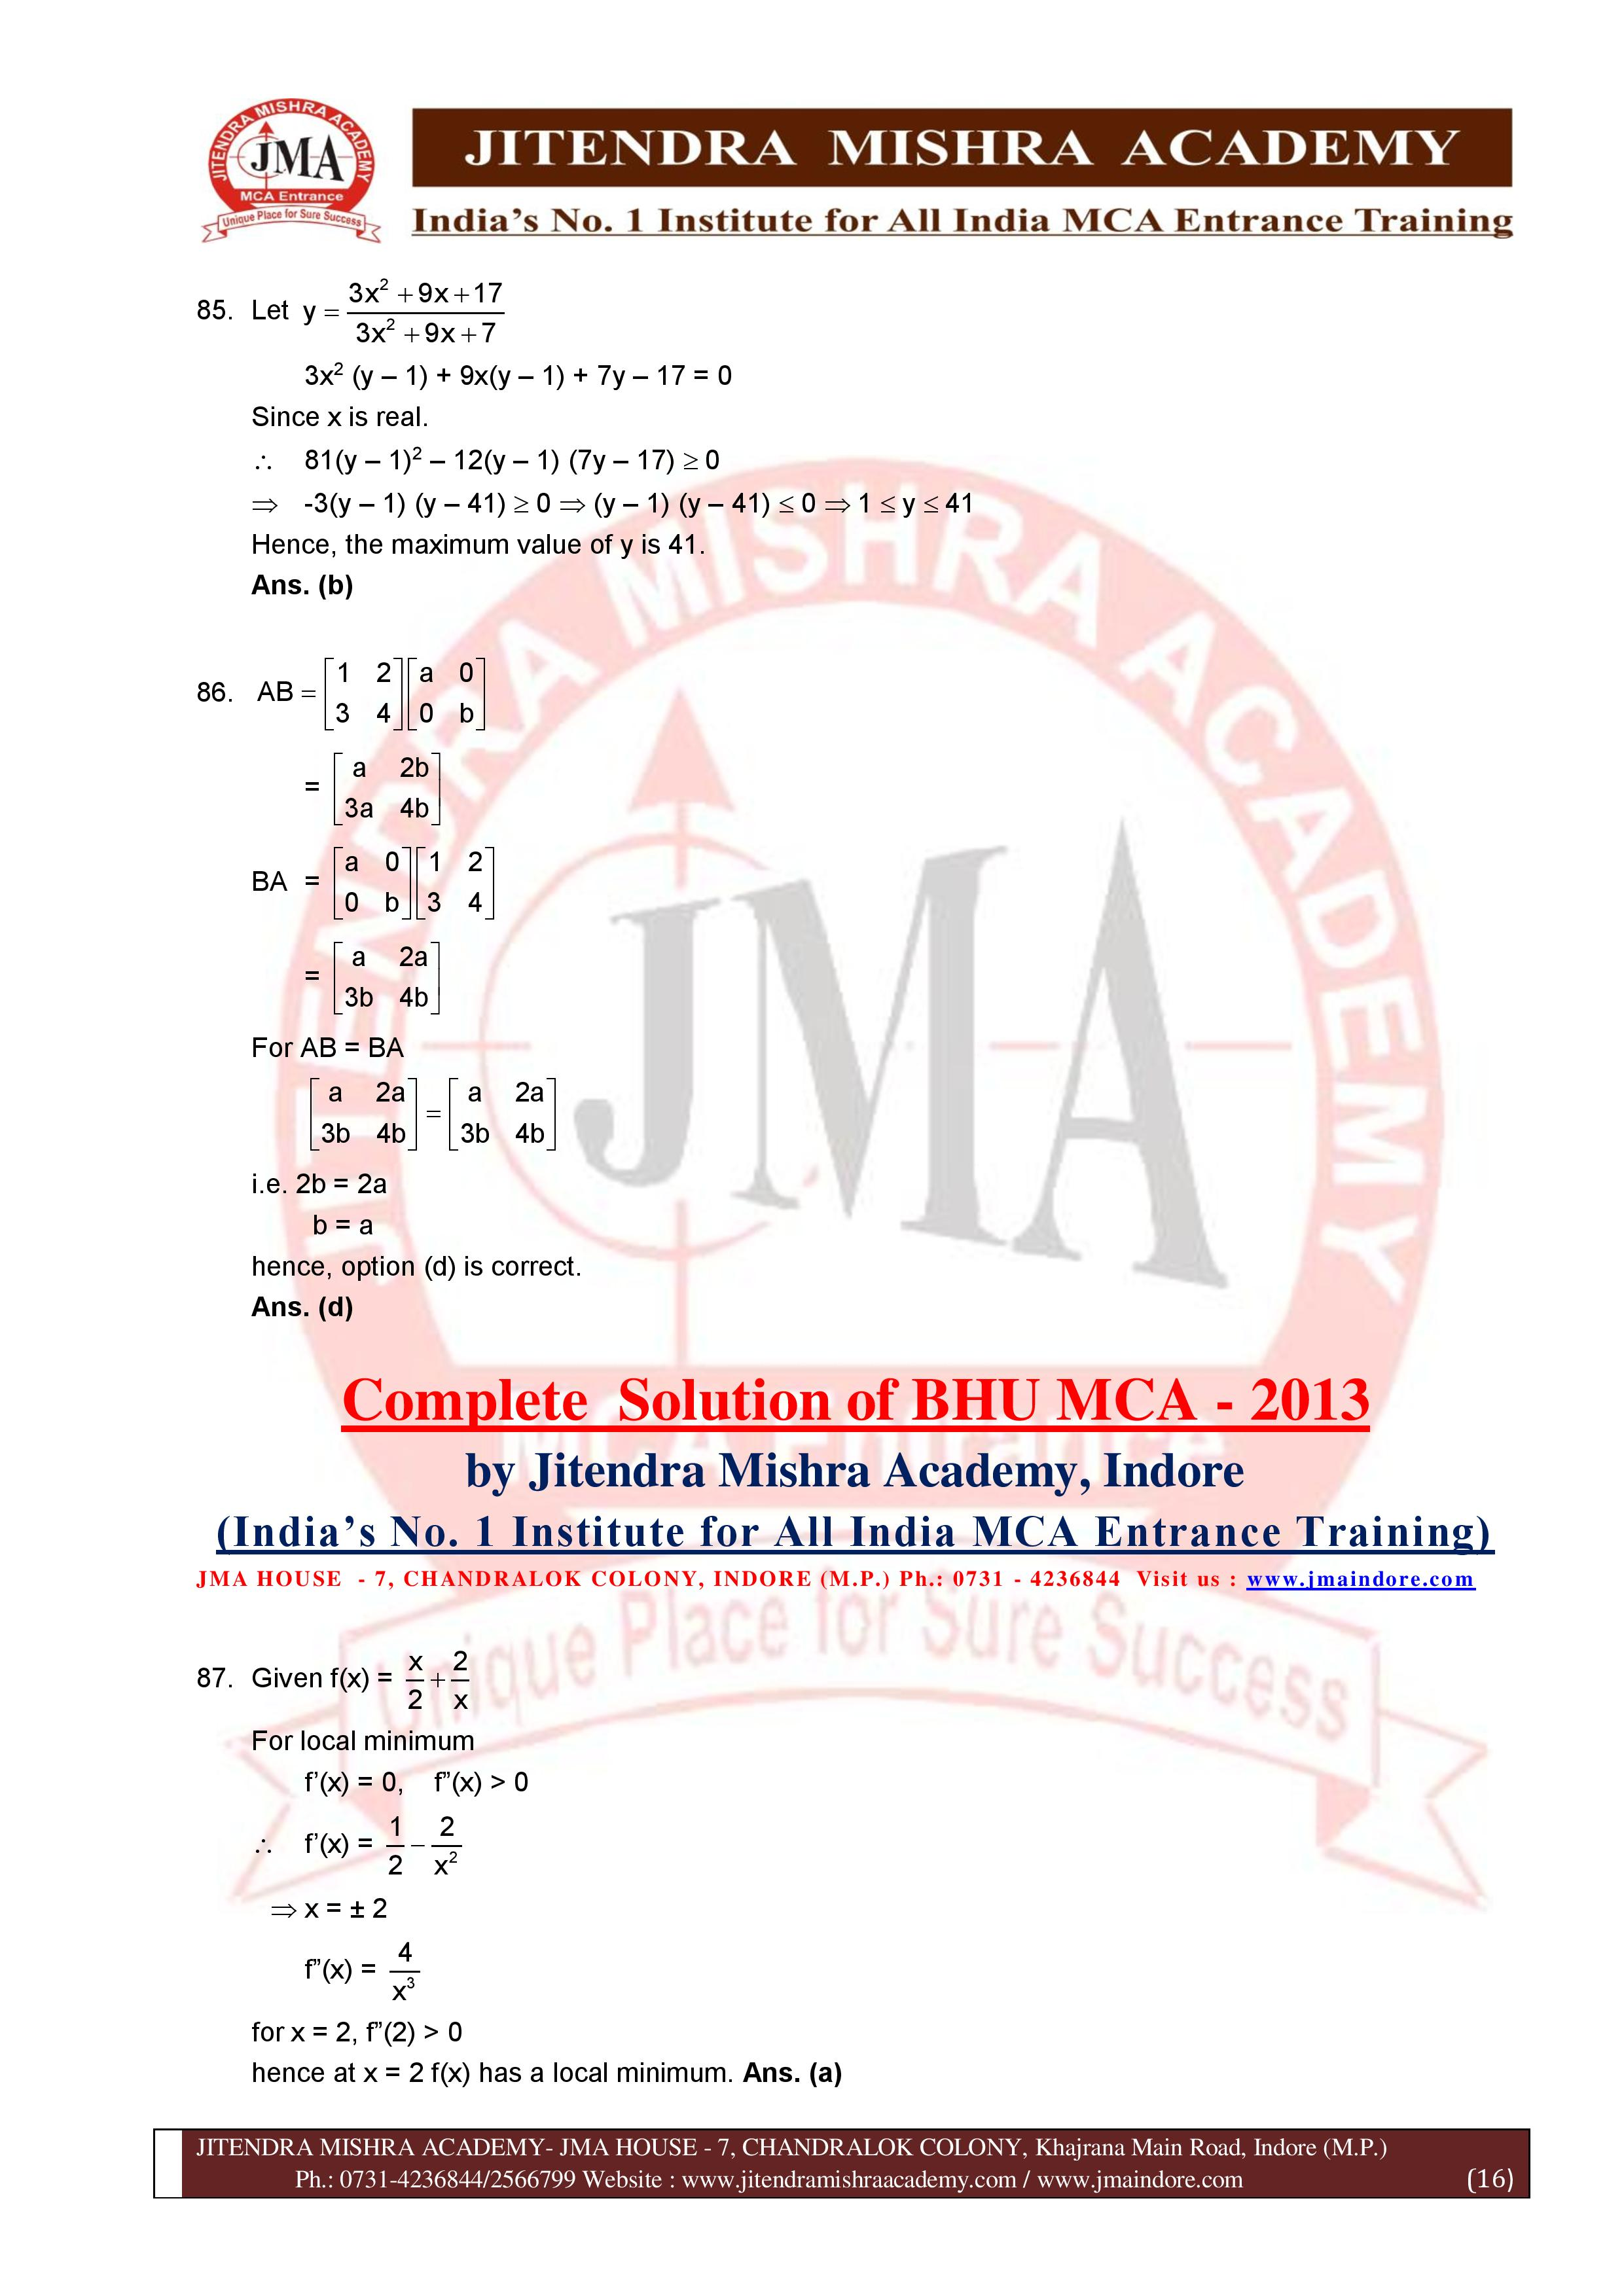 BHU 2013 SOLUTION (SET - 3) (06.07.16)-page-016